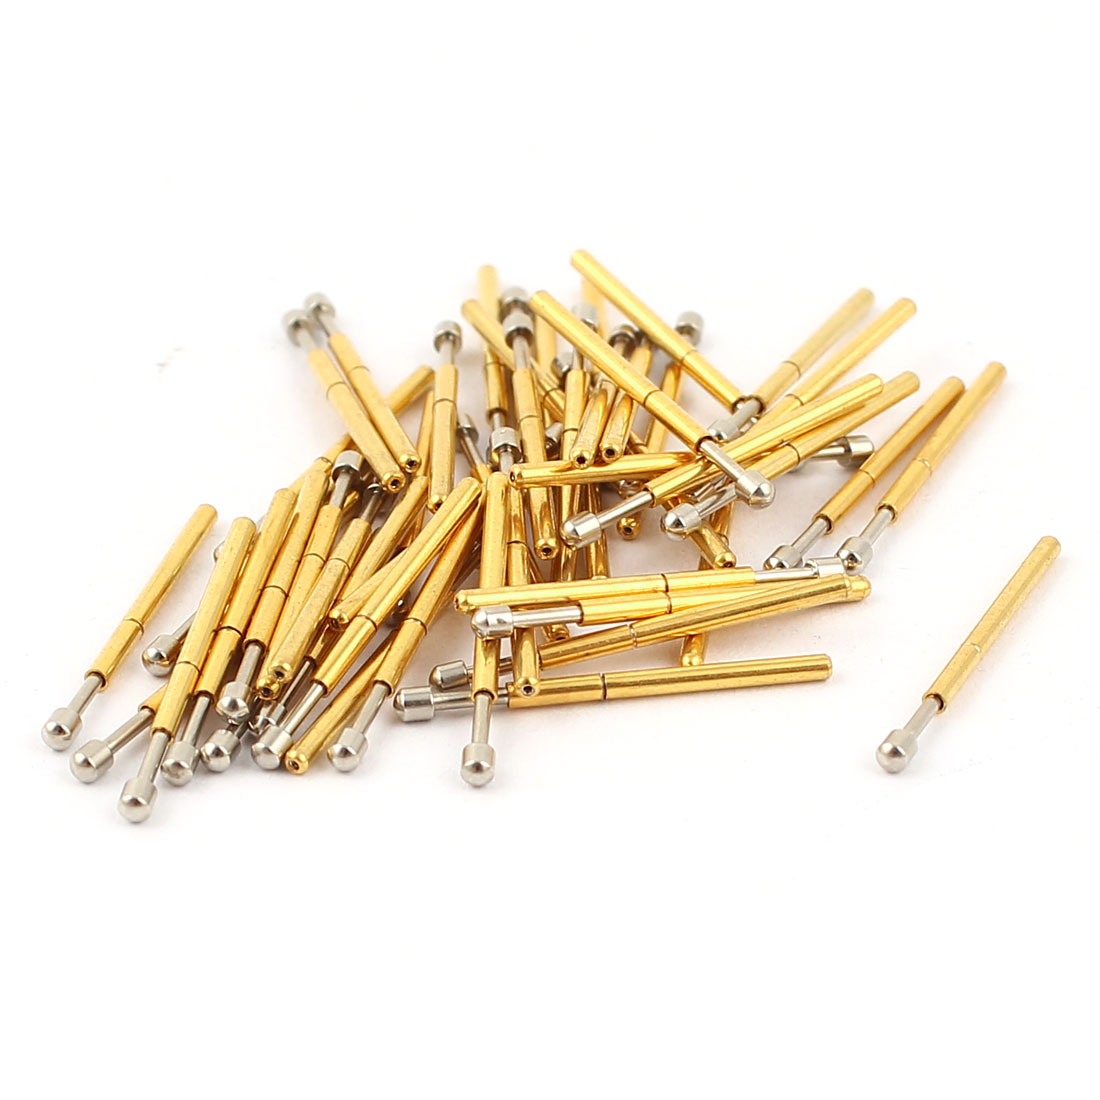 50 Pcs P75-D2 1.3mm Spherical Tip Spring Testing Probes Pin 16.5mm Length